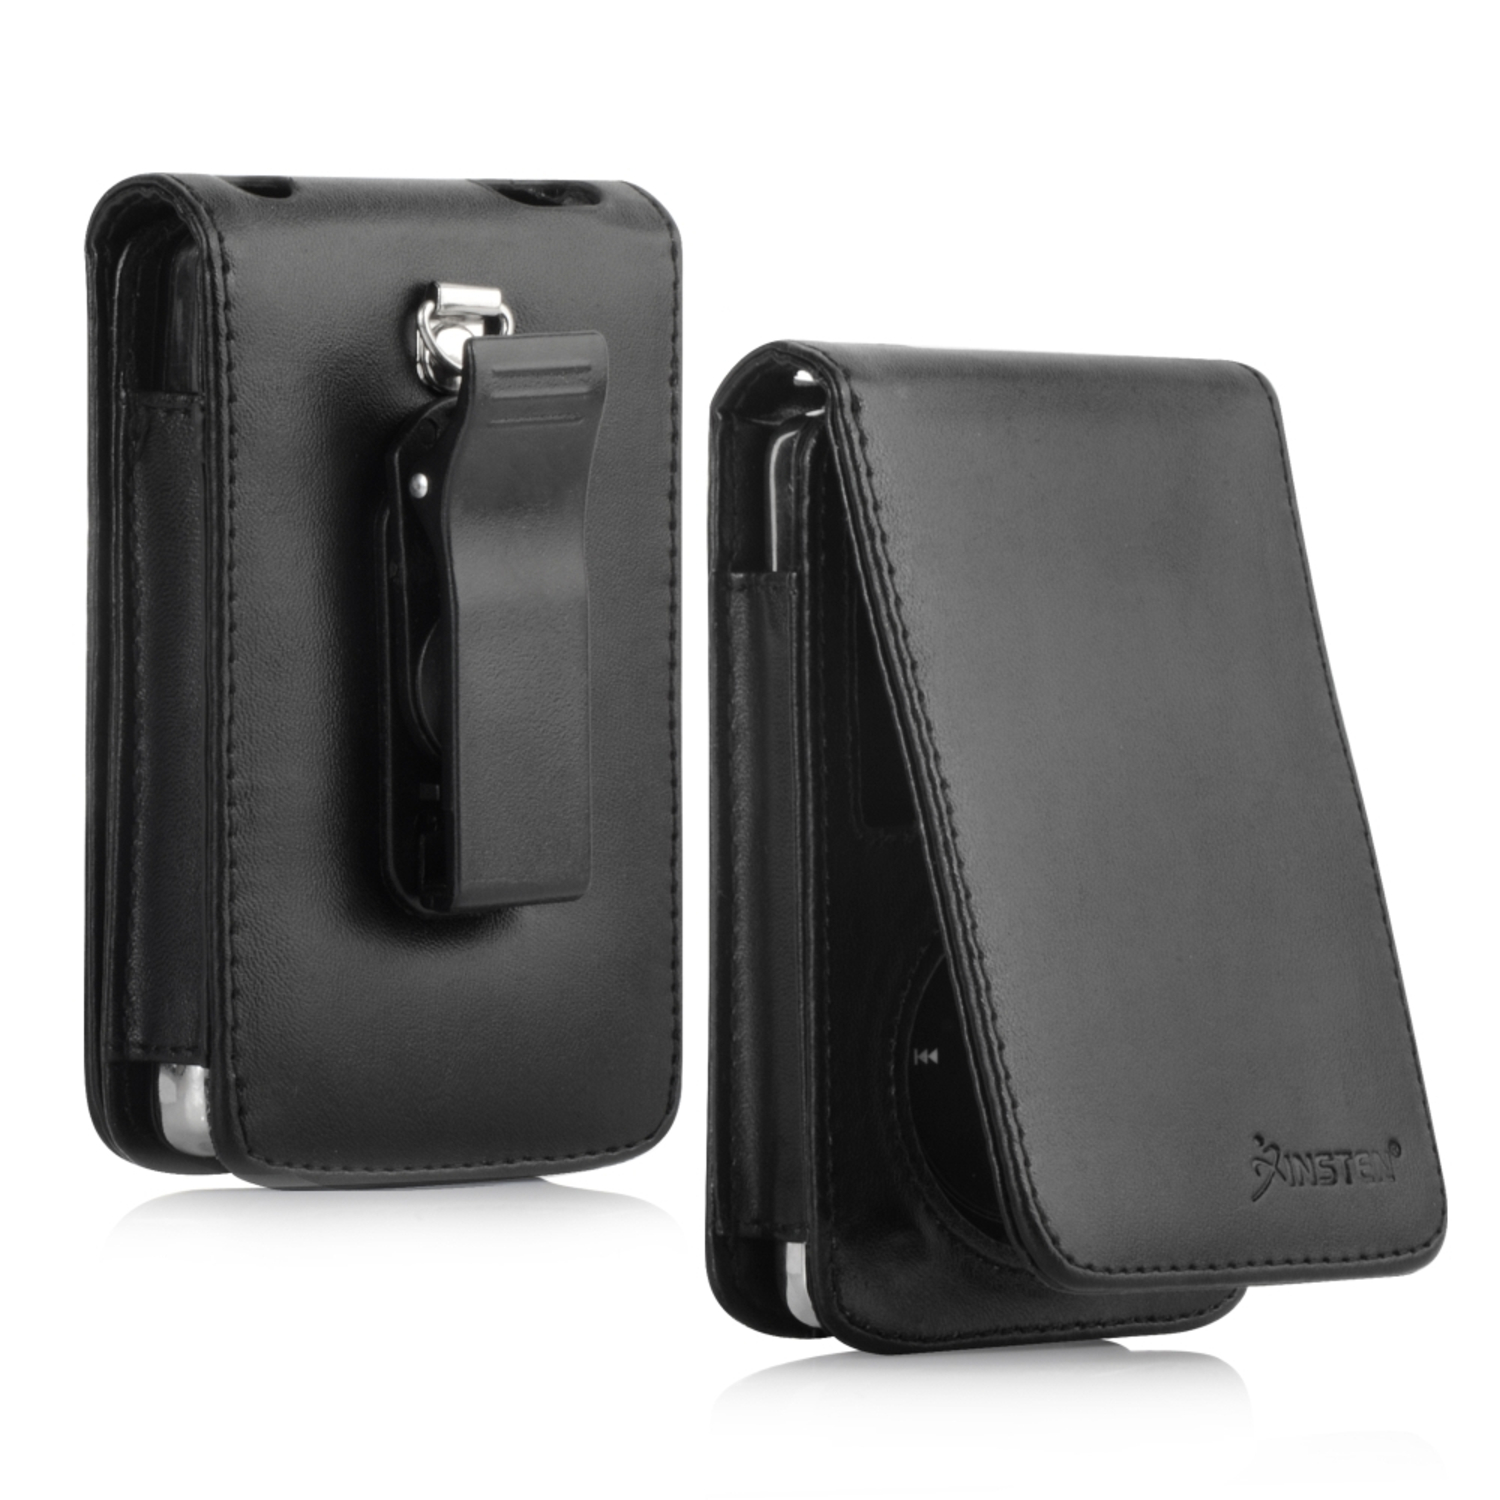 Insten Leather Case w/ Strap For Apple iPod classic 120GB / 80GB, Black